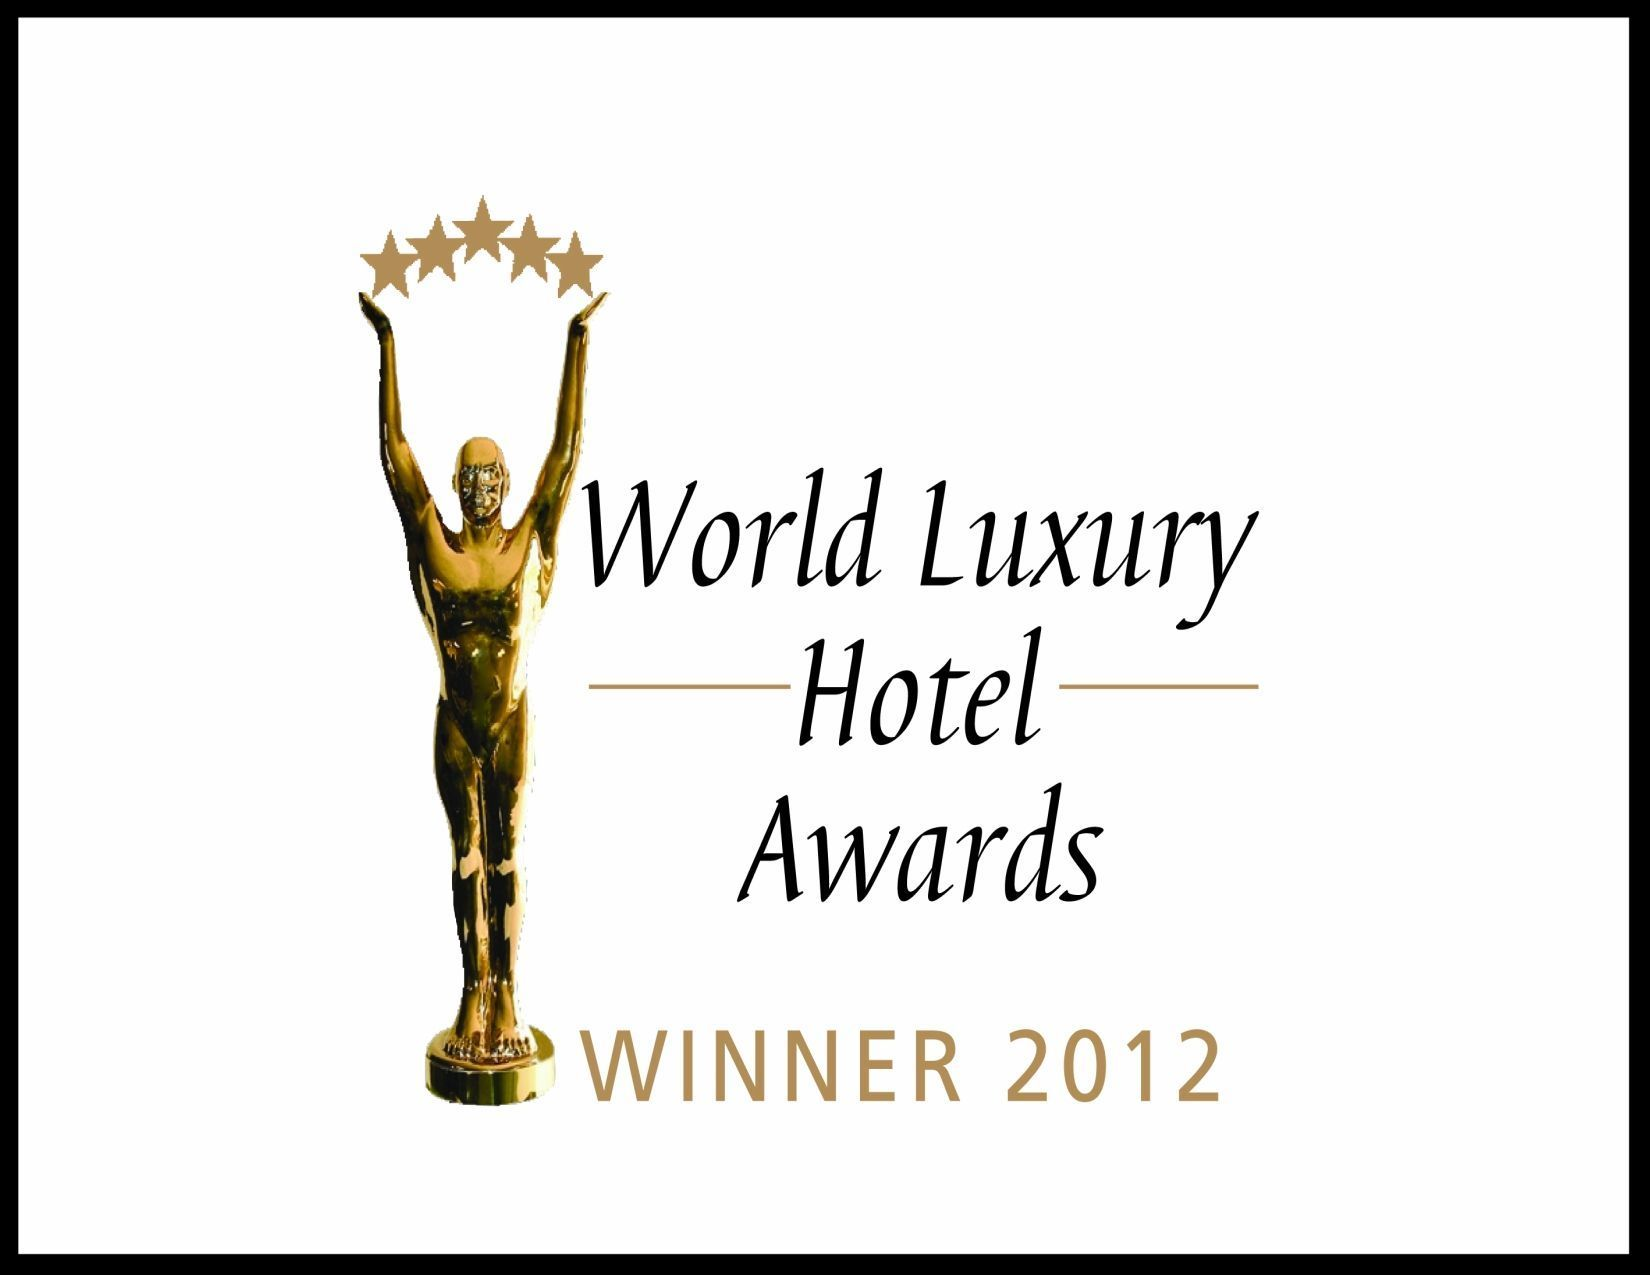 Certificate: World Luxury Hotel Awards Winner 2012